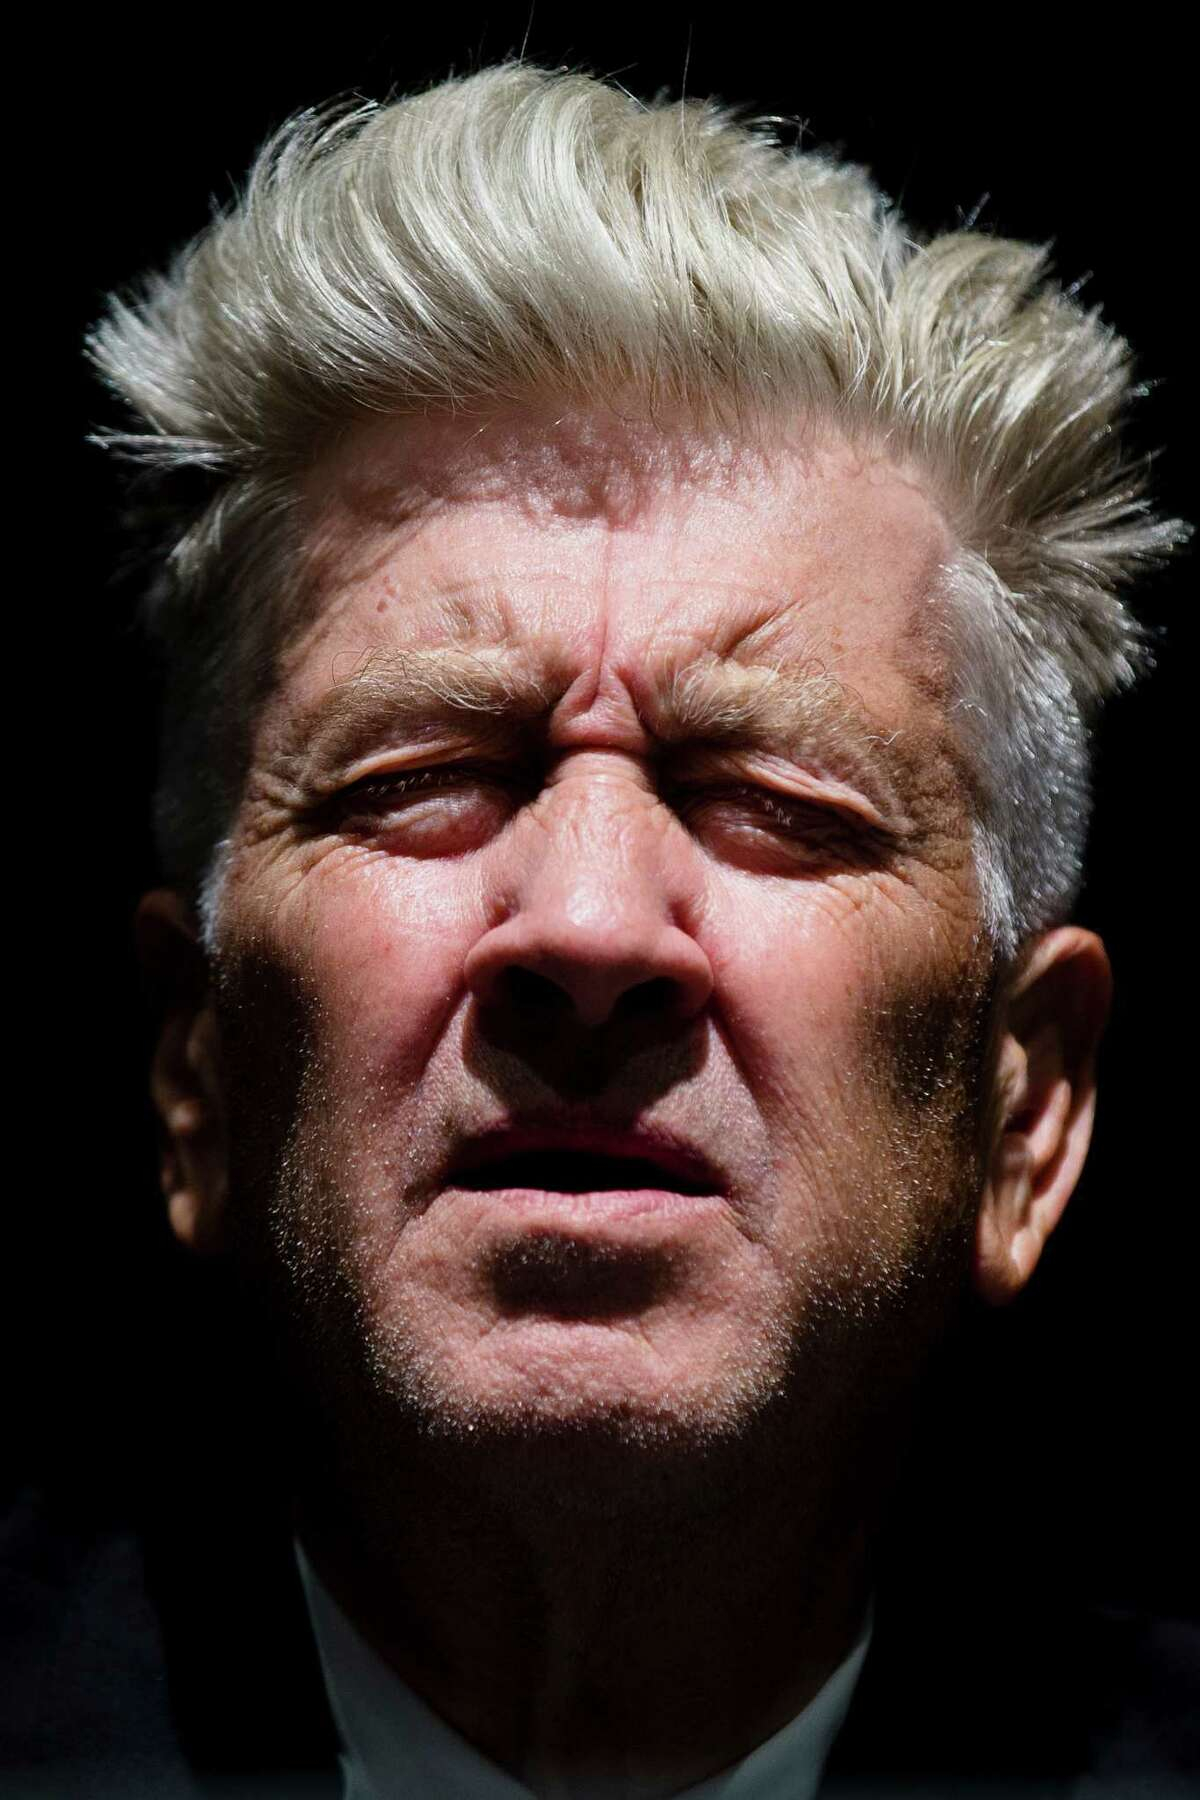 David Lynch closes his eyes as he speaks during a press preview of David Lynch: The Unified Field, Wednesday, Sept. 10, 2014, at his former school The Pennsylvania Academy of the Fine Arts (PAFA) in Philadelphia. The show is schedule to be on view from Sept. 13, 2014 to Jan. 11, 2015, and is the first major U.S. museum exhibition of the filmmaker and PAFA alumnus' work. (AP Photo/Matt Rourke) ORG XMIT: PAMR108